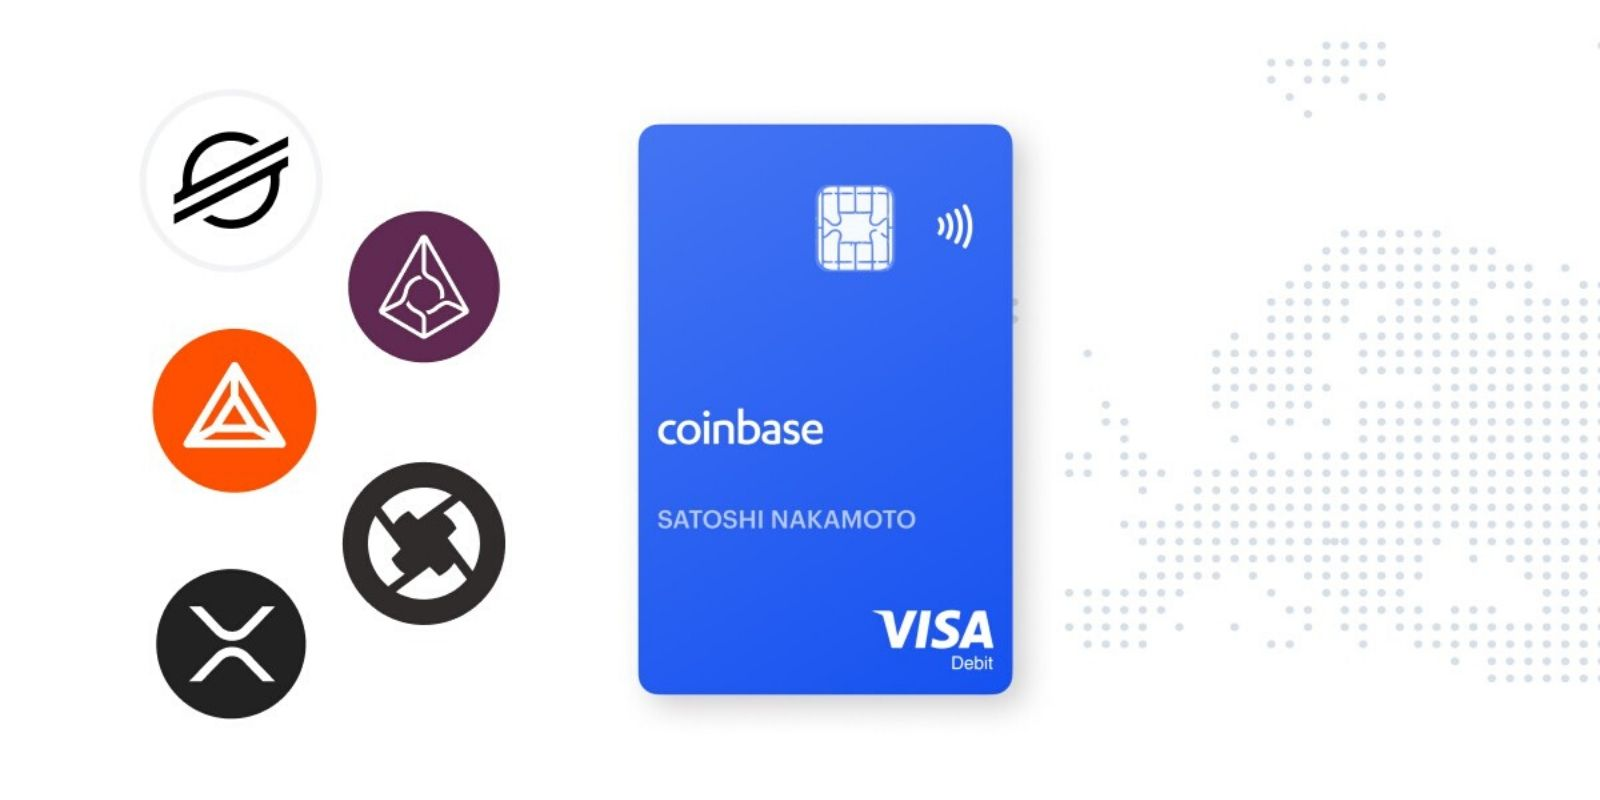 coinbase-card-supporte-5-nouveaux-actifs-10-pays-supplementaires-1.jpg